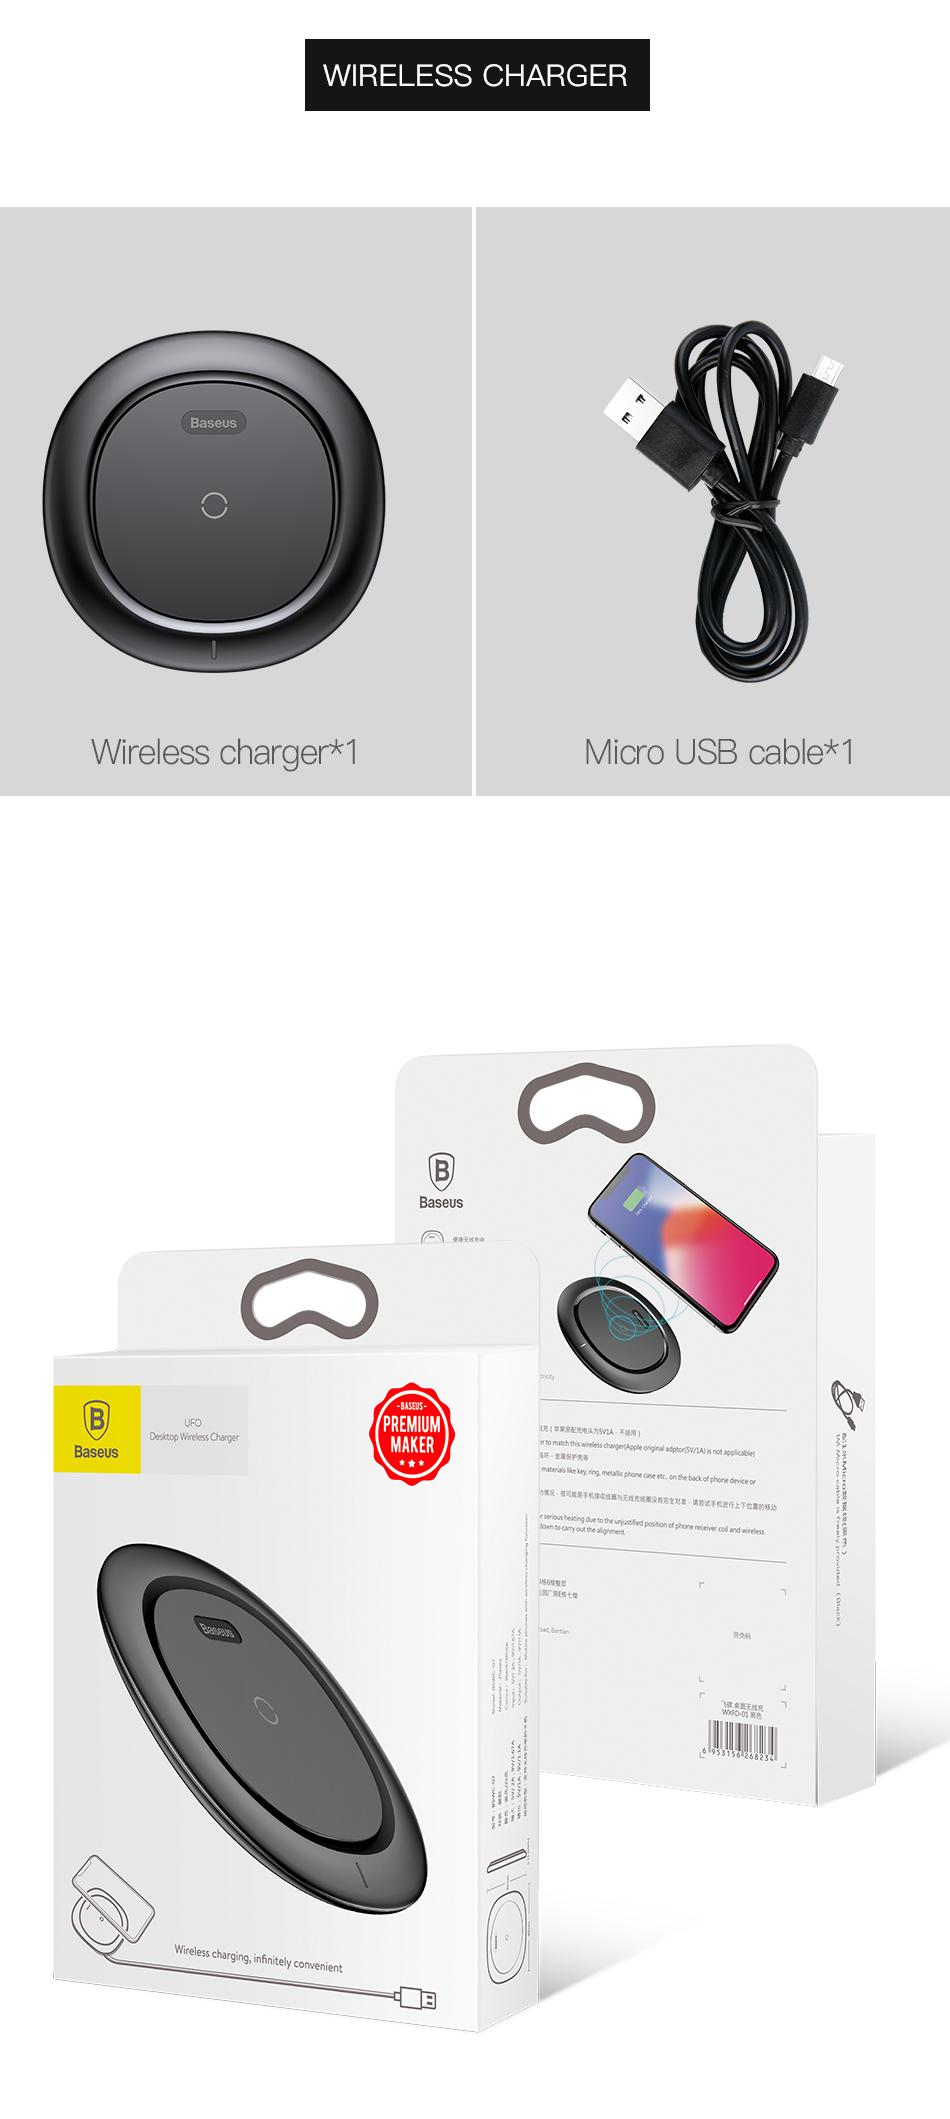 Baseus Qi Wireless Charging Charger For Iphone X 8 Samsung Note S8 Desktop S7 S6 Edge Mobile Phone